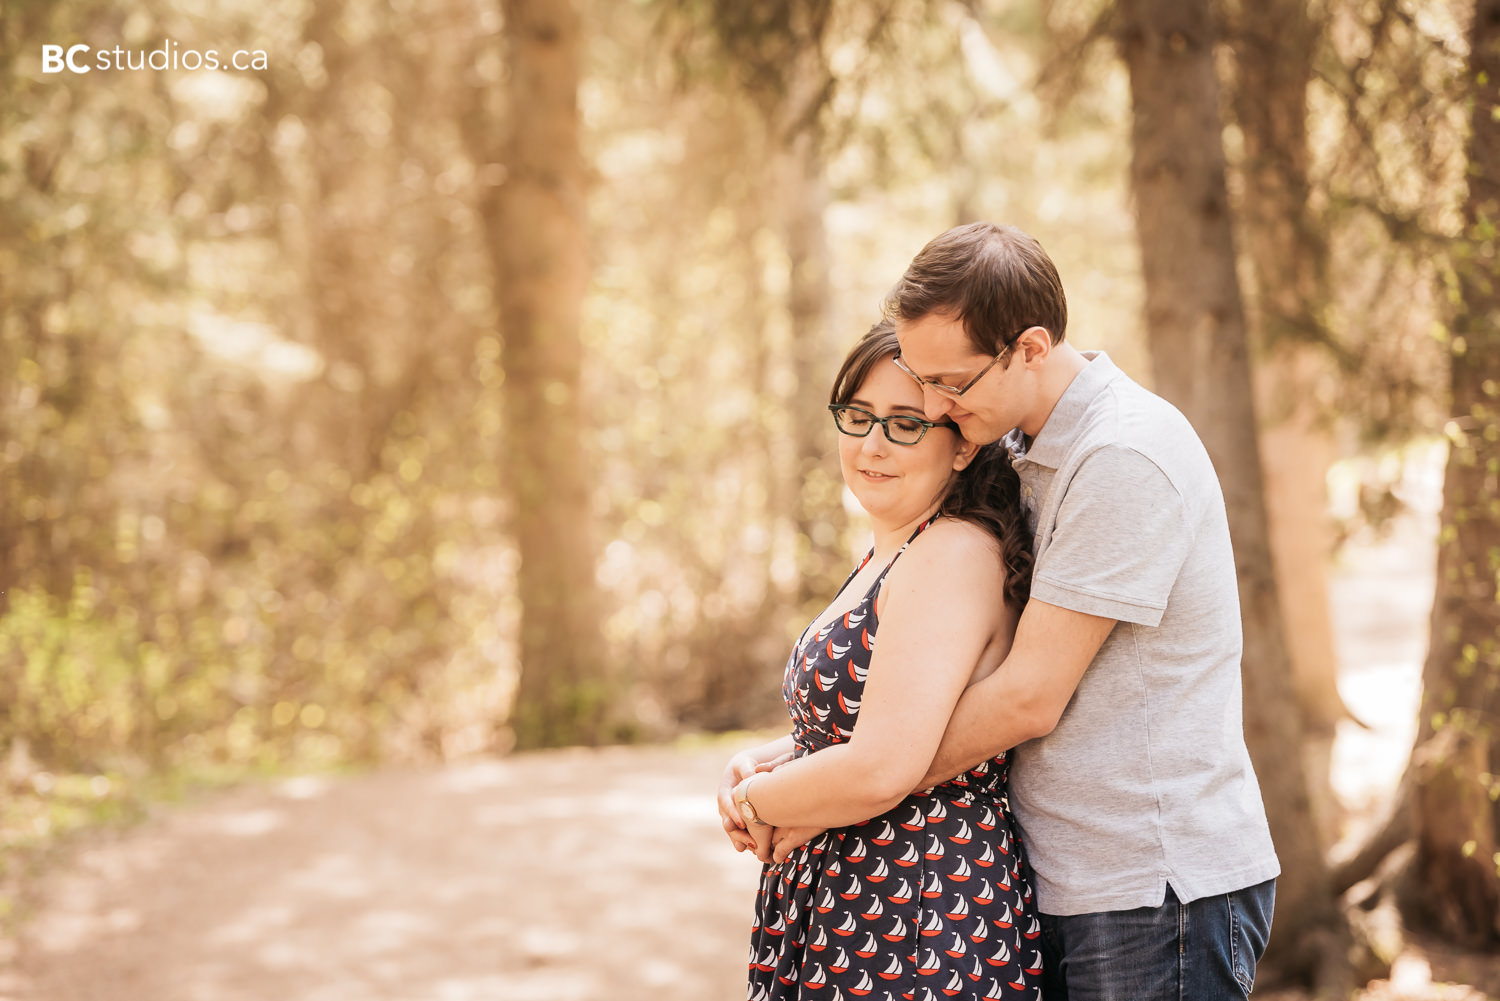 The Di Lullo's Engagement Session at Whitemud Ravine Edmonton